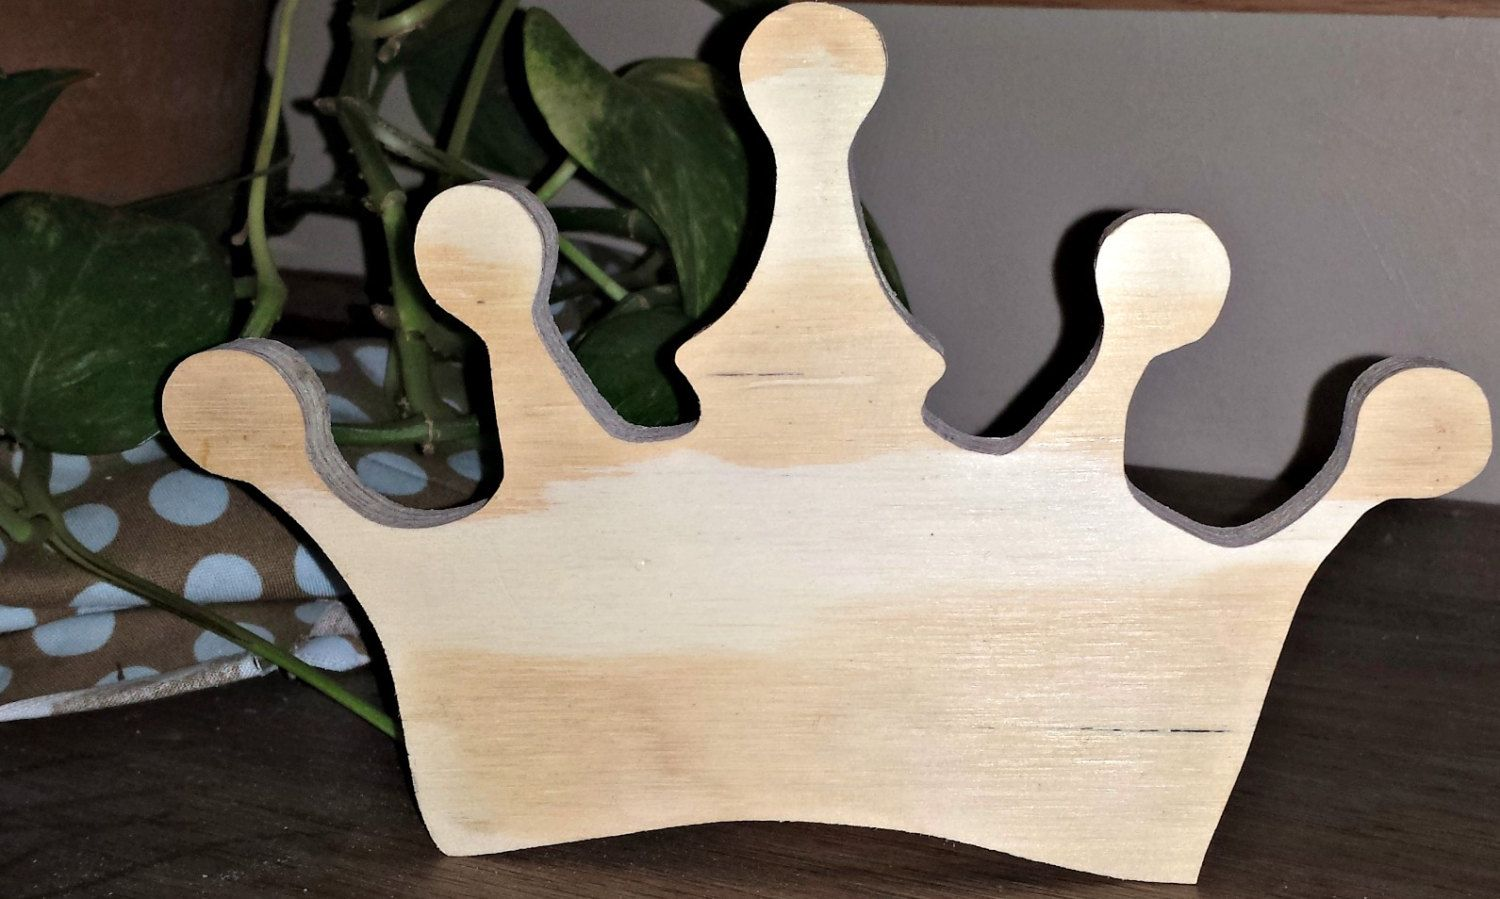 unfinished crown by OKCustomFurniture on Etsy